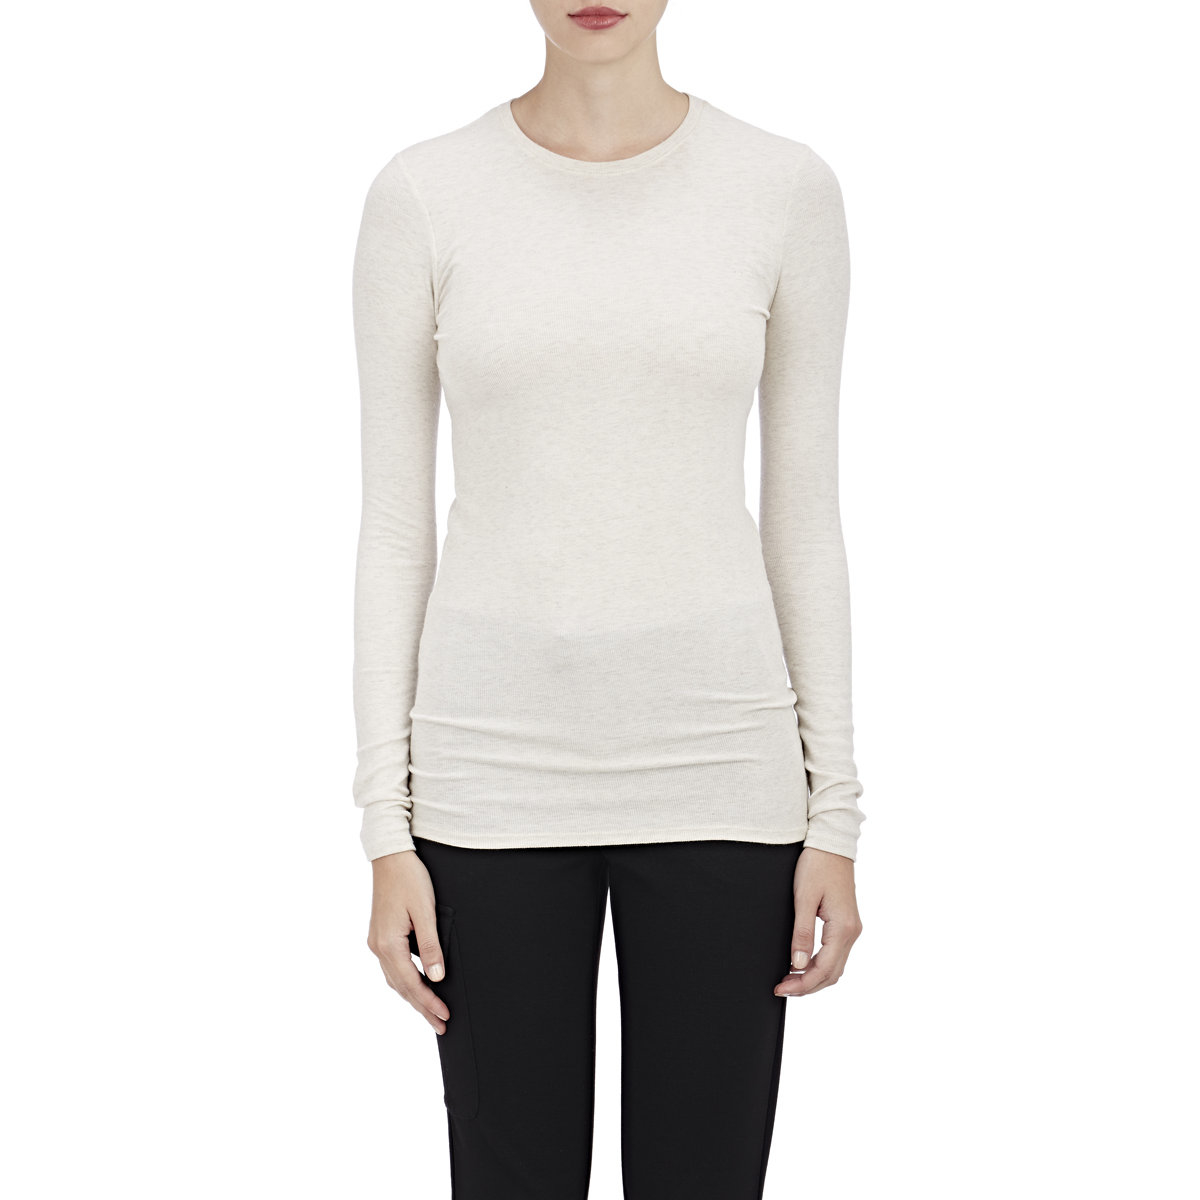 Atm women 39 s rib knit long sleeve t shirt in white lyst for Ribbed long sleeve shirt